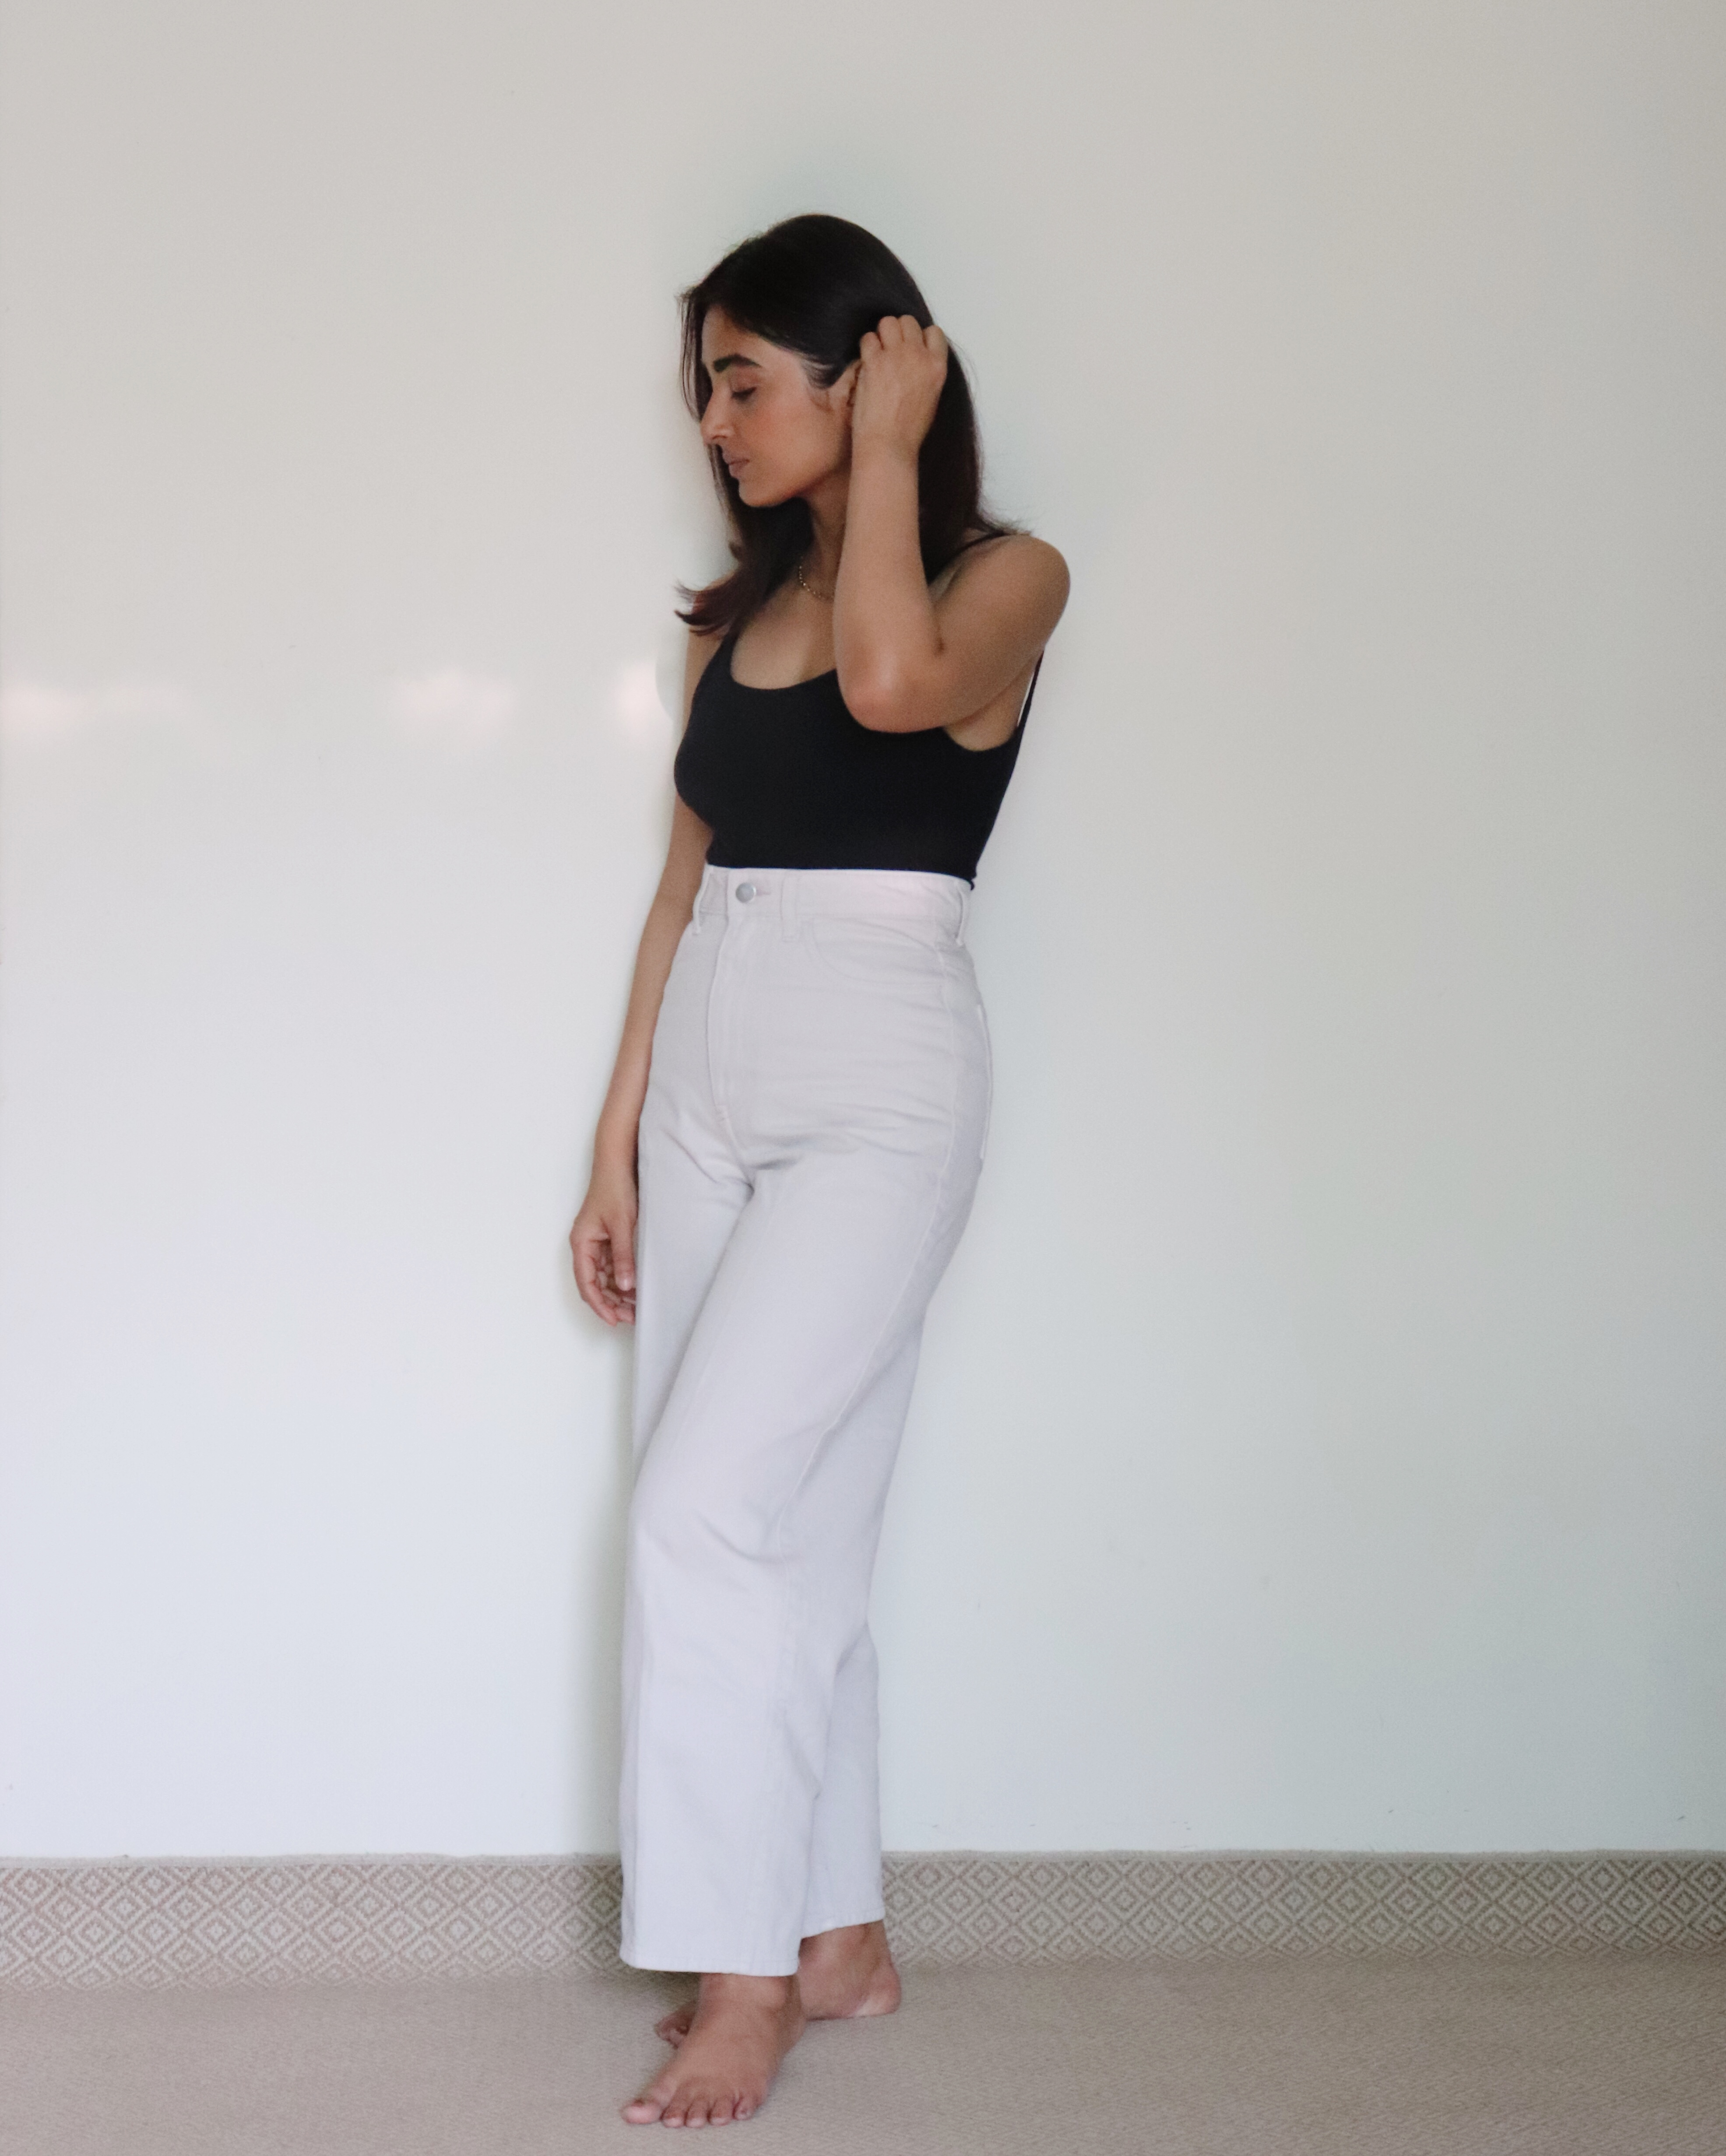 High Waist Denim for petitte - Fashion Raasa